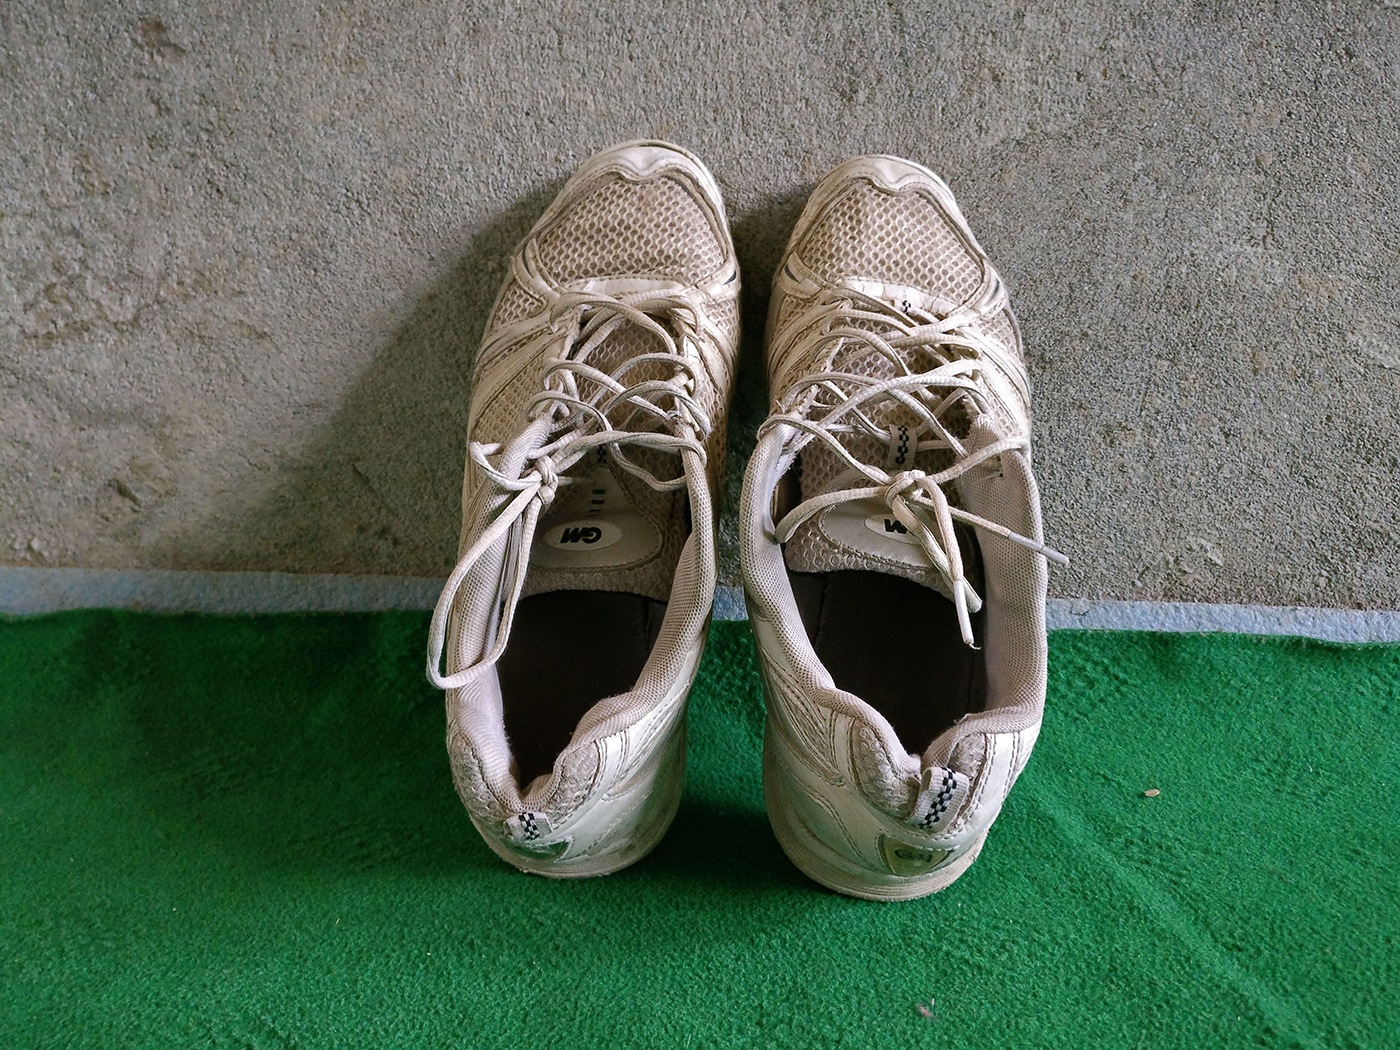 Manzoor's first pair of cricket shoes, gifted to him by Samiullah Beigh